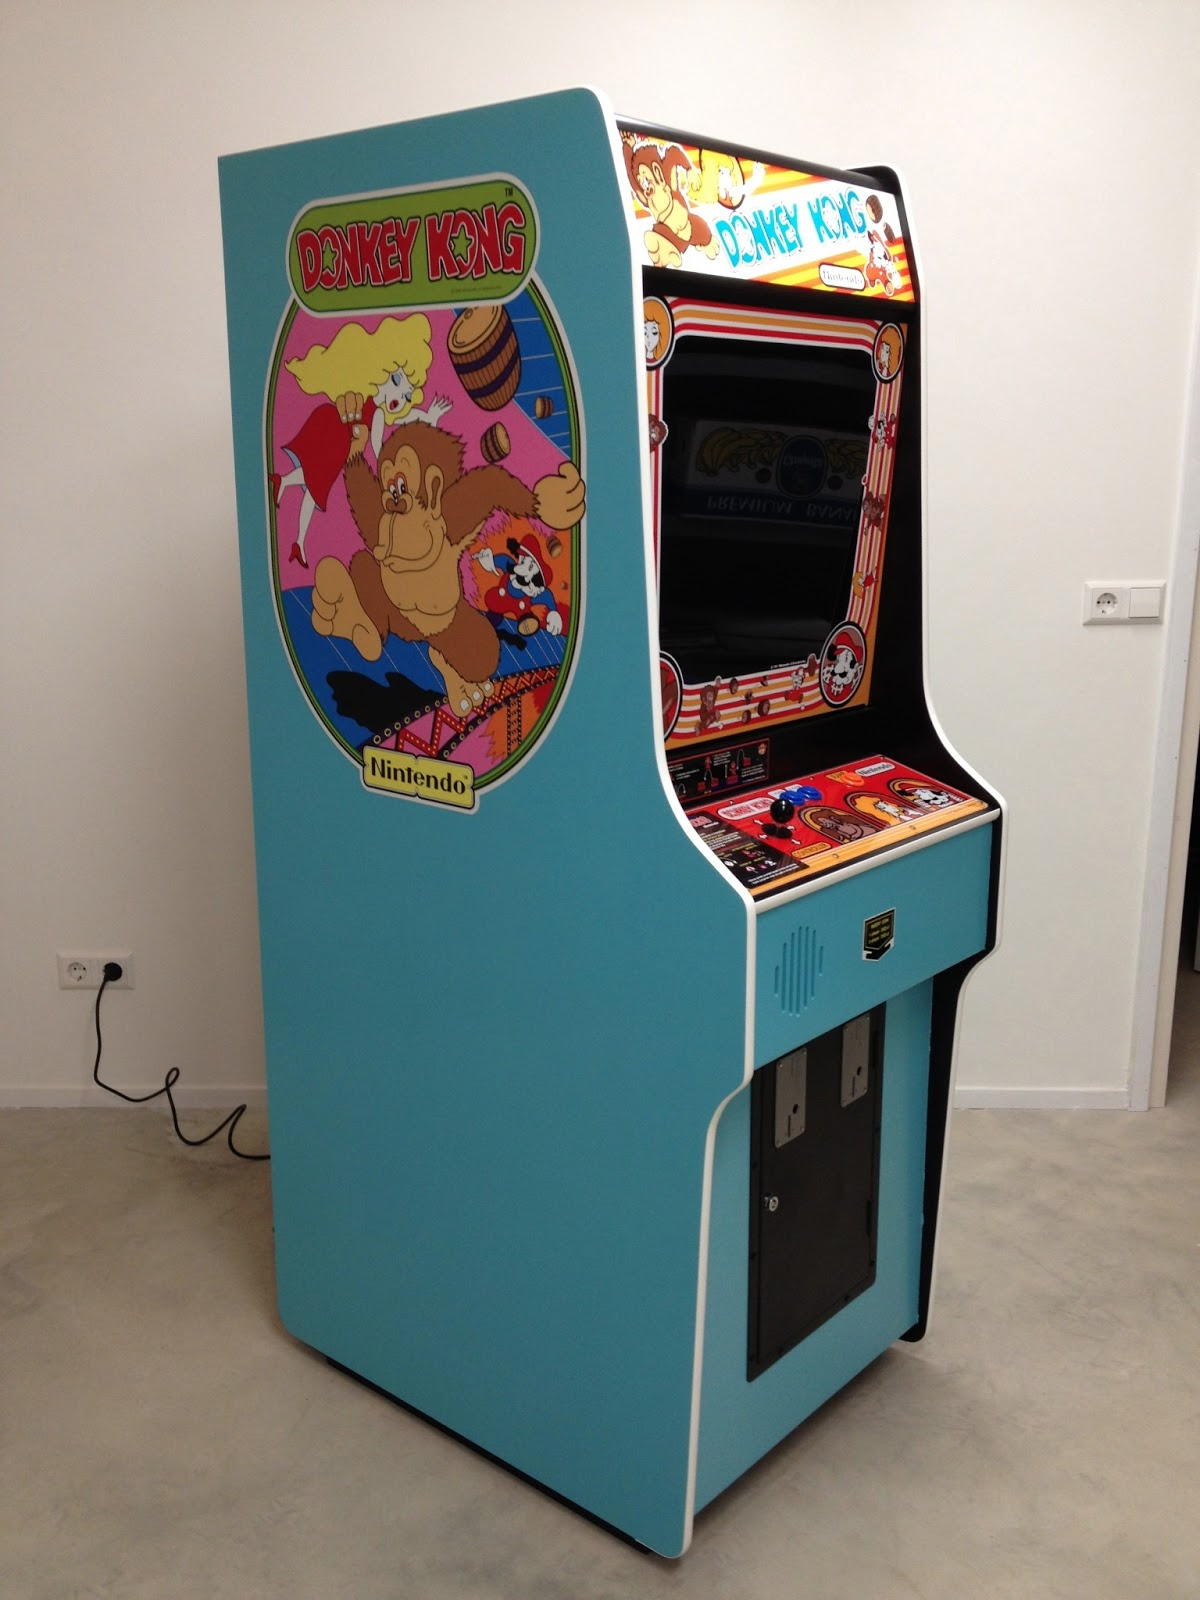 Building A Donkey Kong Arcade Cabinet!